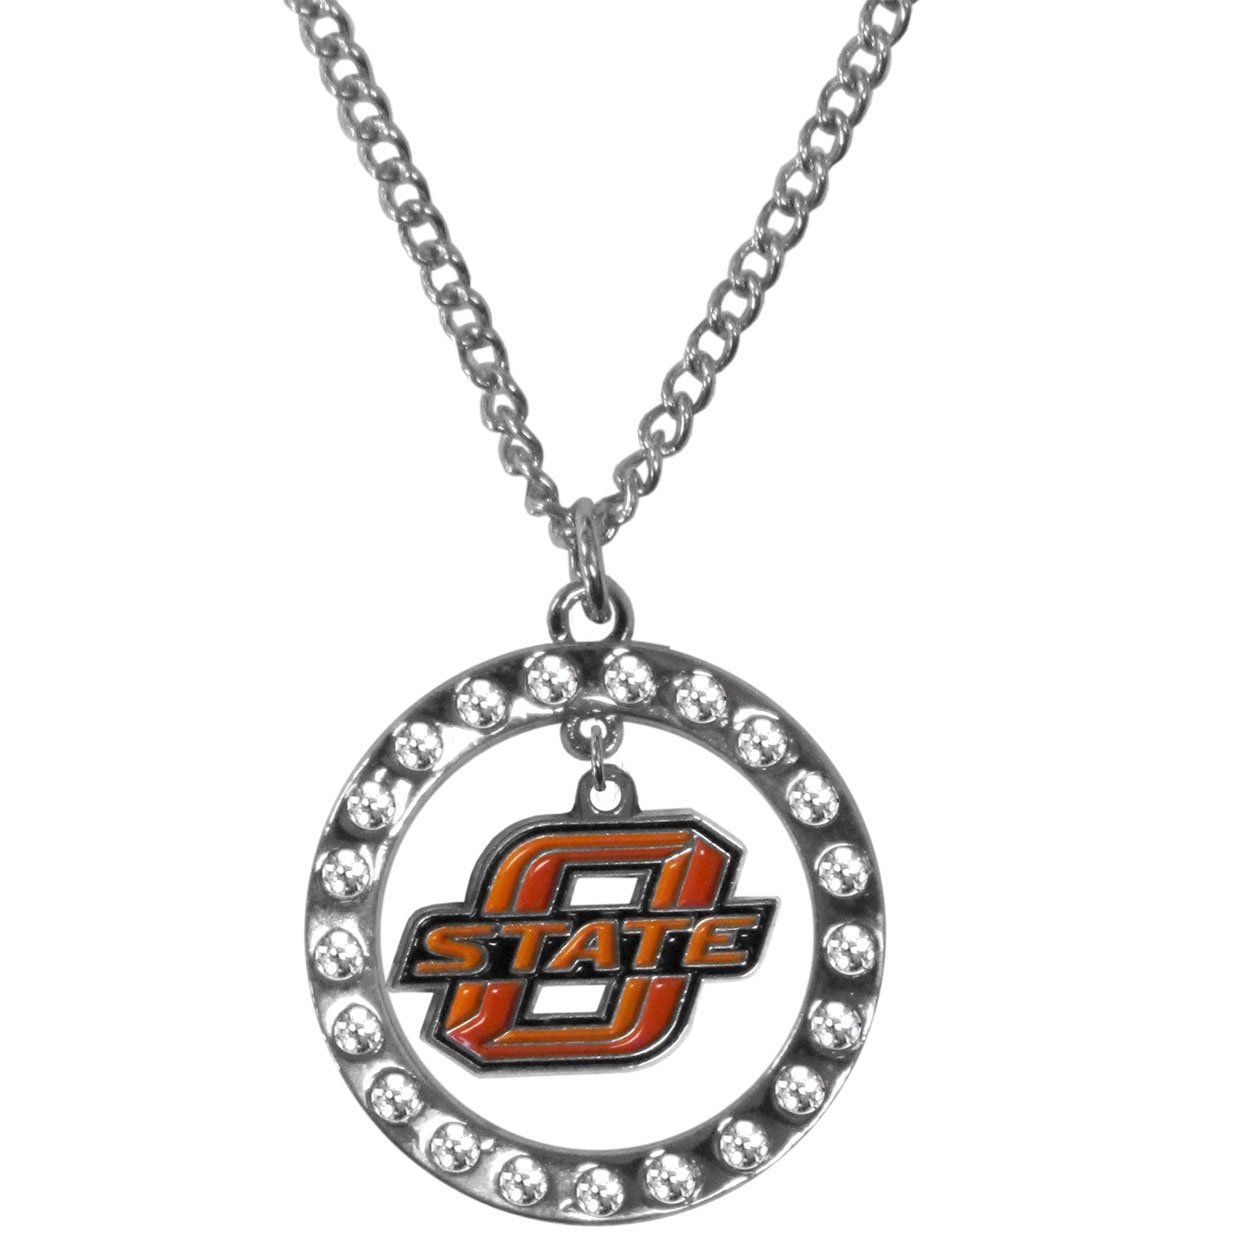 Oklahoma St. Cowboys Rhinestone Hoop Necklaces - Our Oklahoma St. Cowboys rhinestone hoop necklace comes on an 18 inch chain and features a hoop covered in rhinestones with a high polish chrome finish and a cast and enameled team charm dangling in the center.